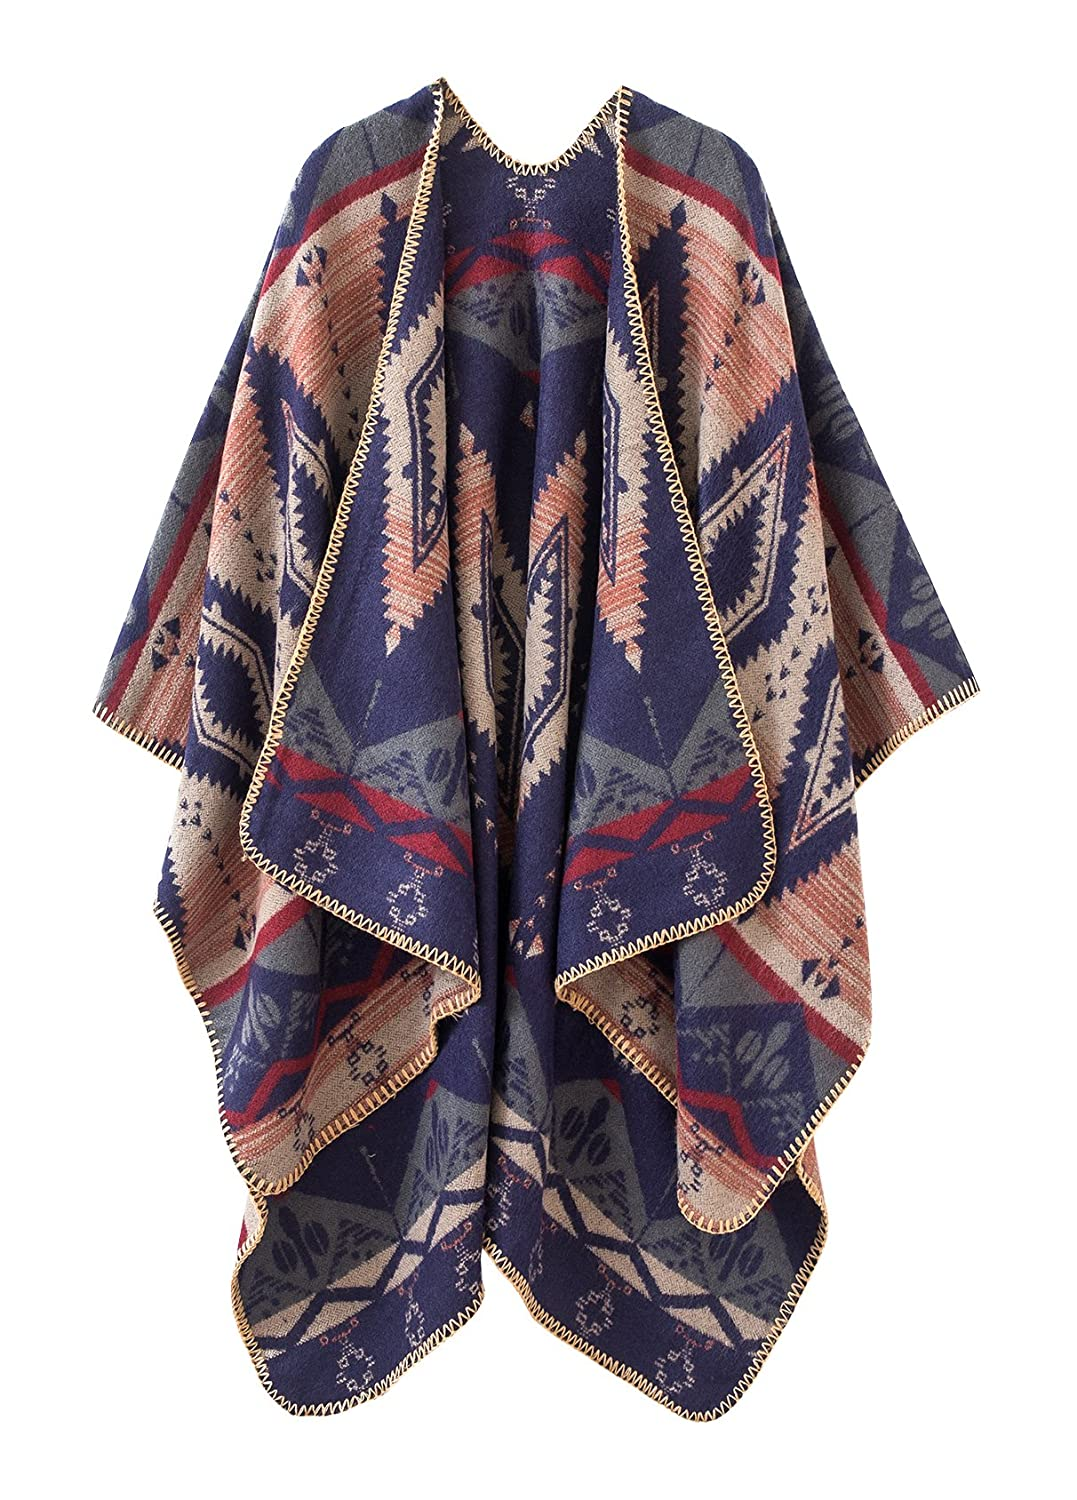 397dfba9963e Urban CoCo Women's Color Block Shawl Wrap Open Front Poncho Cape (Navy  blue) at Amazon Women's Clothing store: